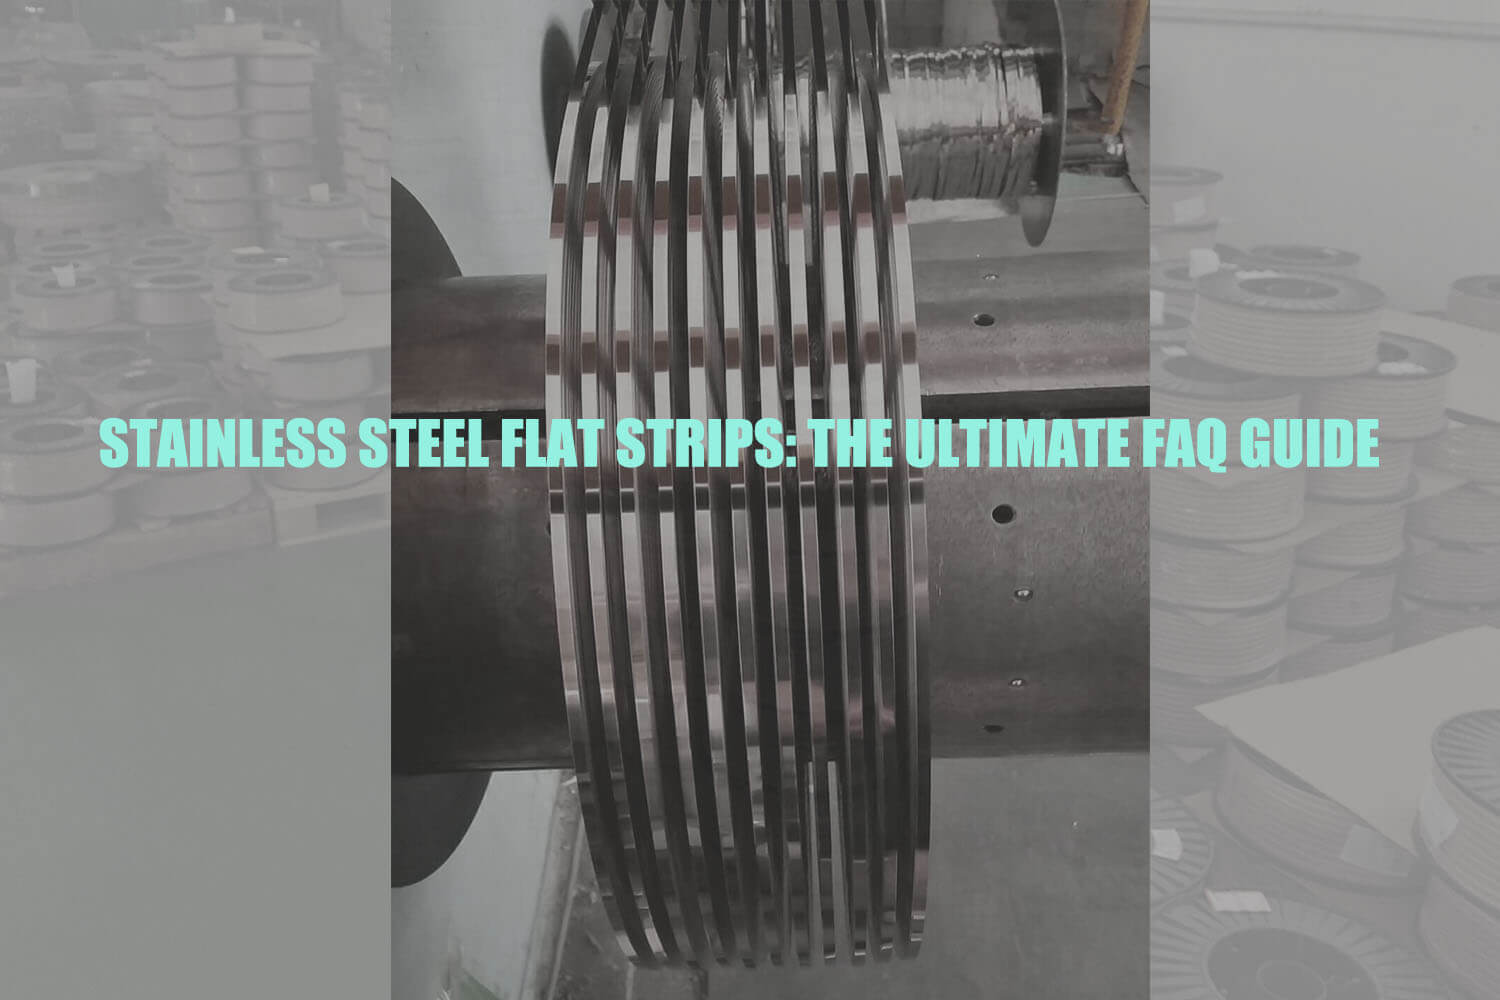 stainless-steel-flat-strips